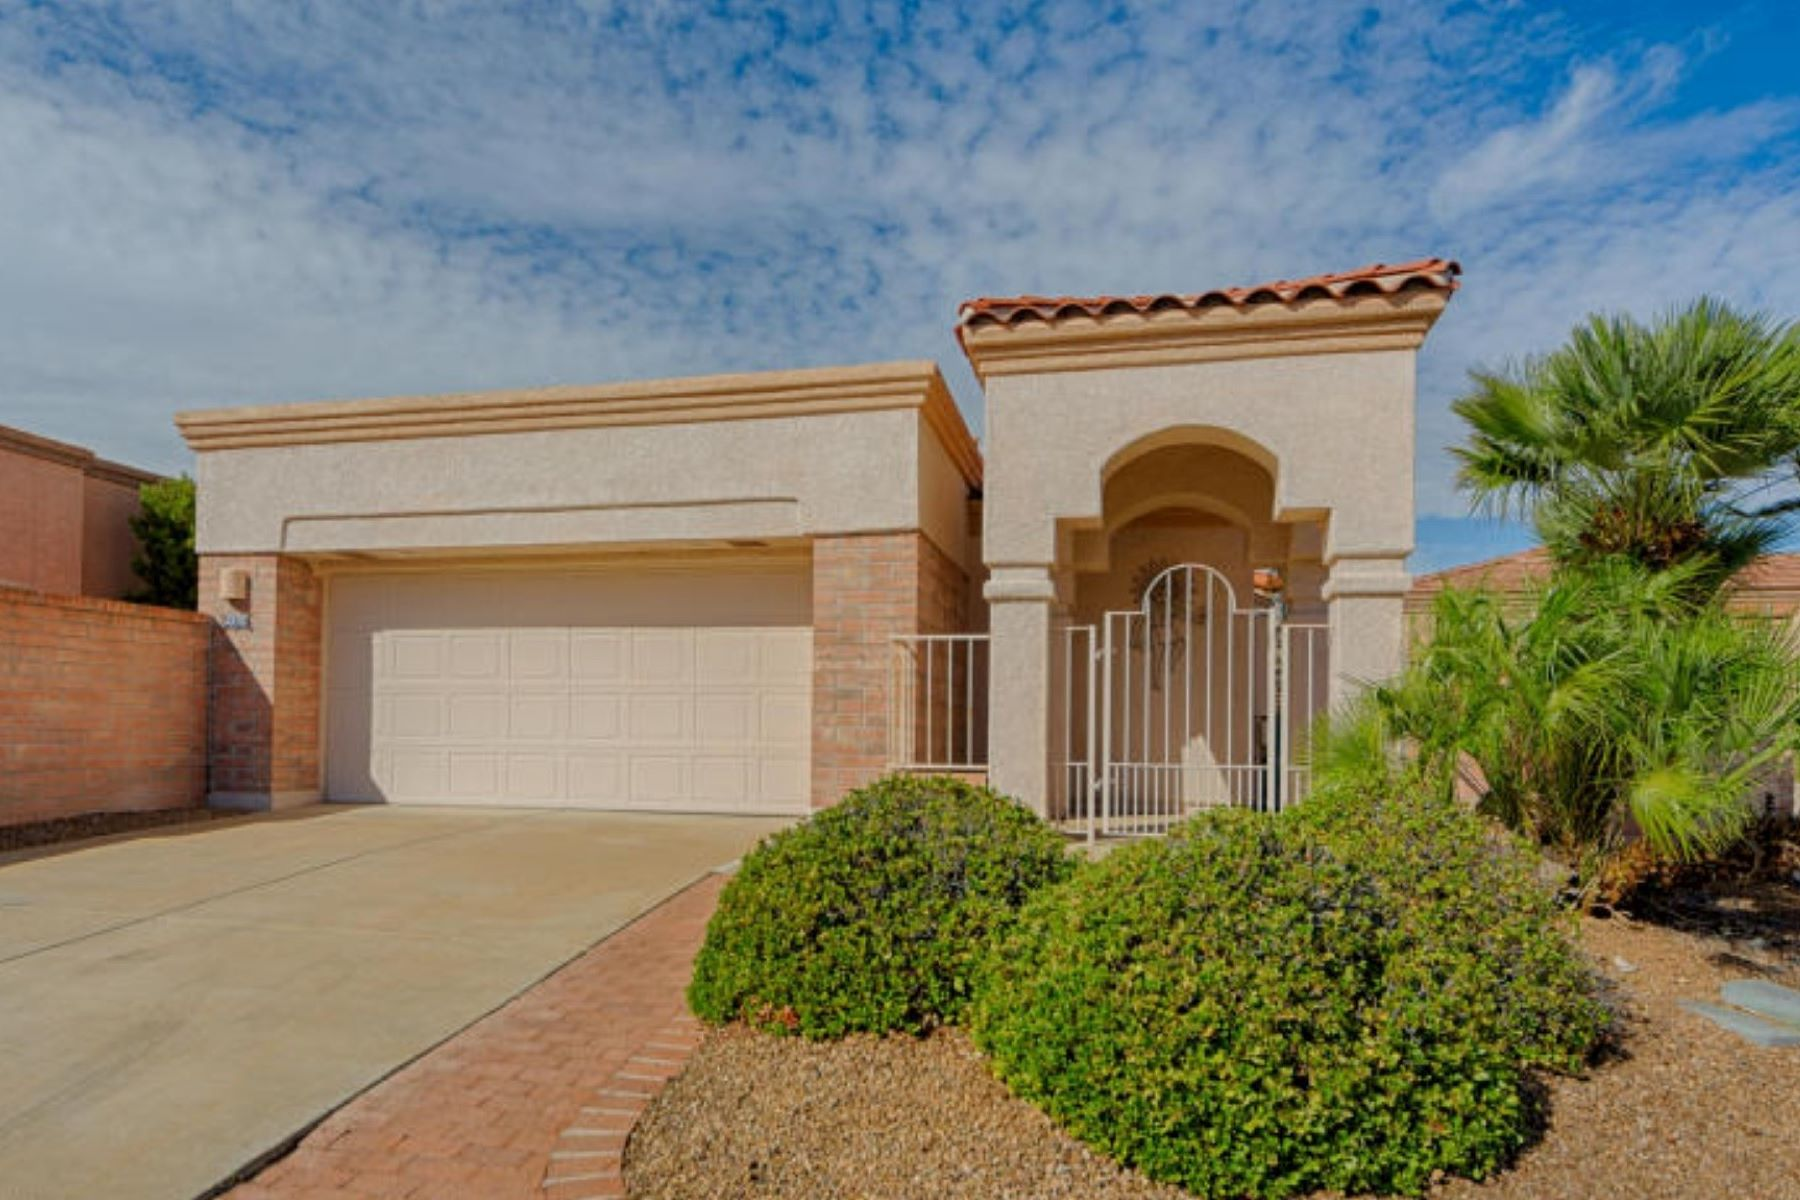 Maison unifamiliale pour l Vente à Golfers Delight 4370 S Golf Estates Drive Green Valley, Arizona 85622 États-Unis